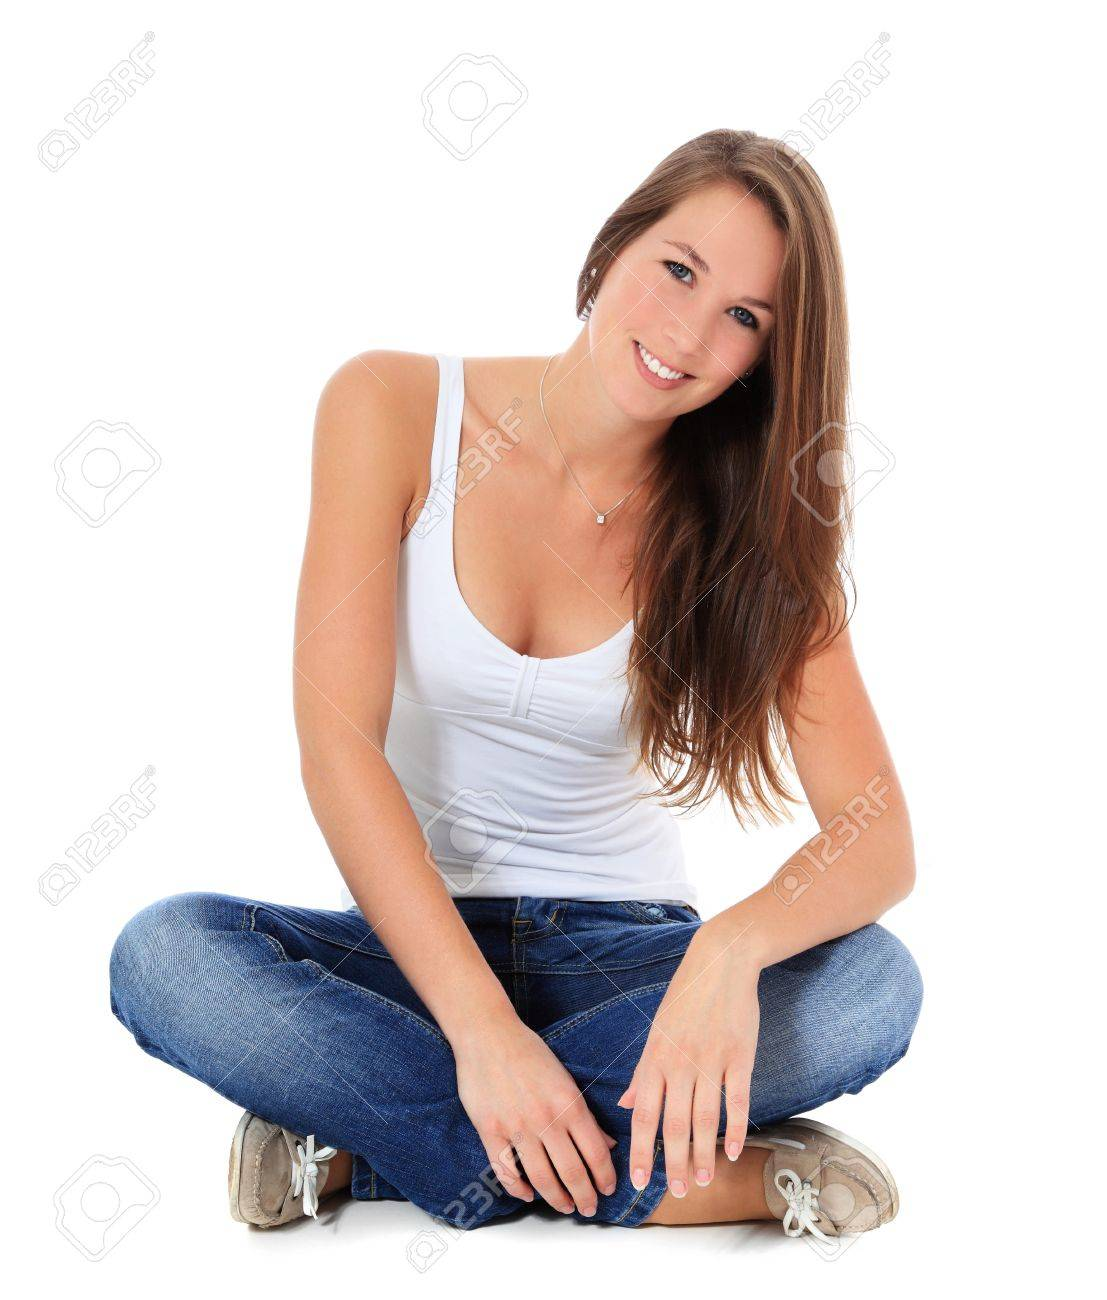 Attractive young woman. All on white background. Stock Photo - 10160195